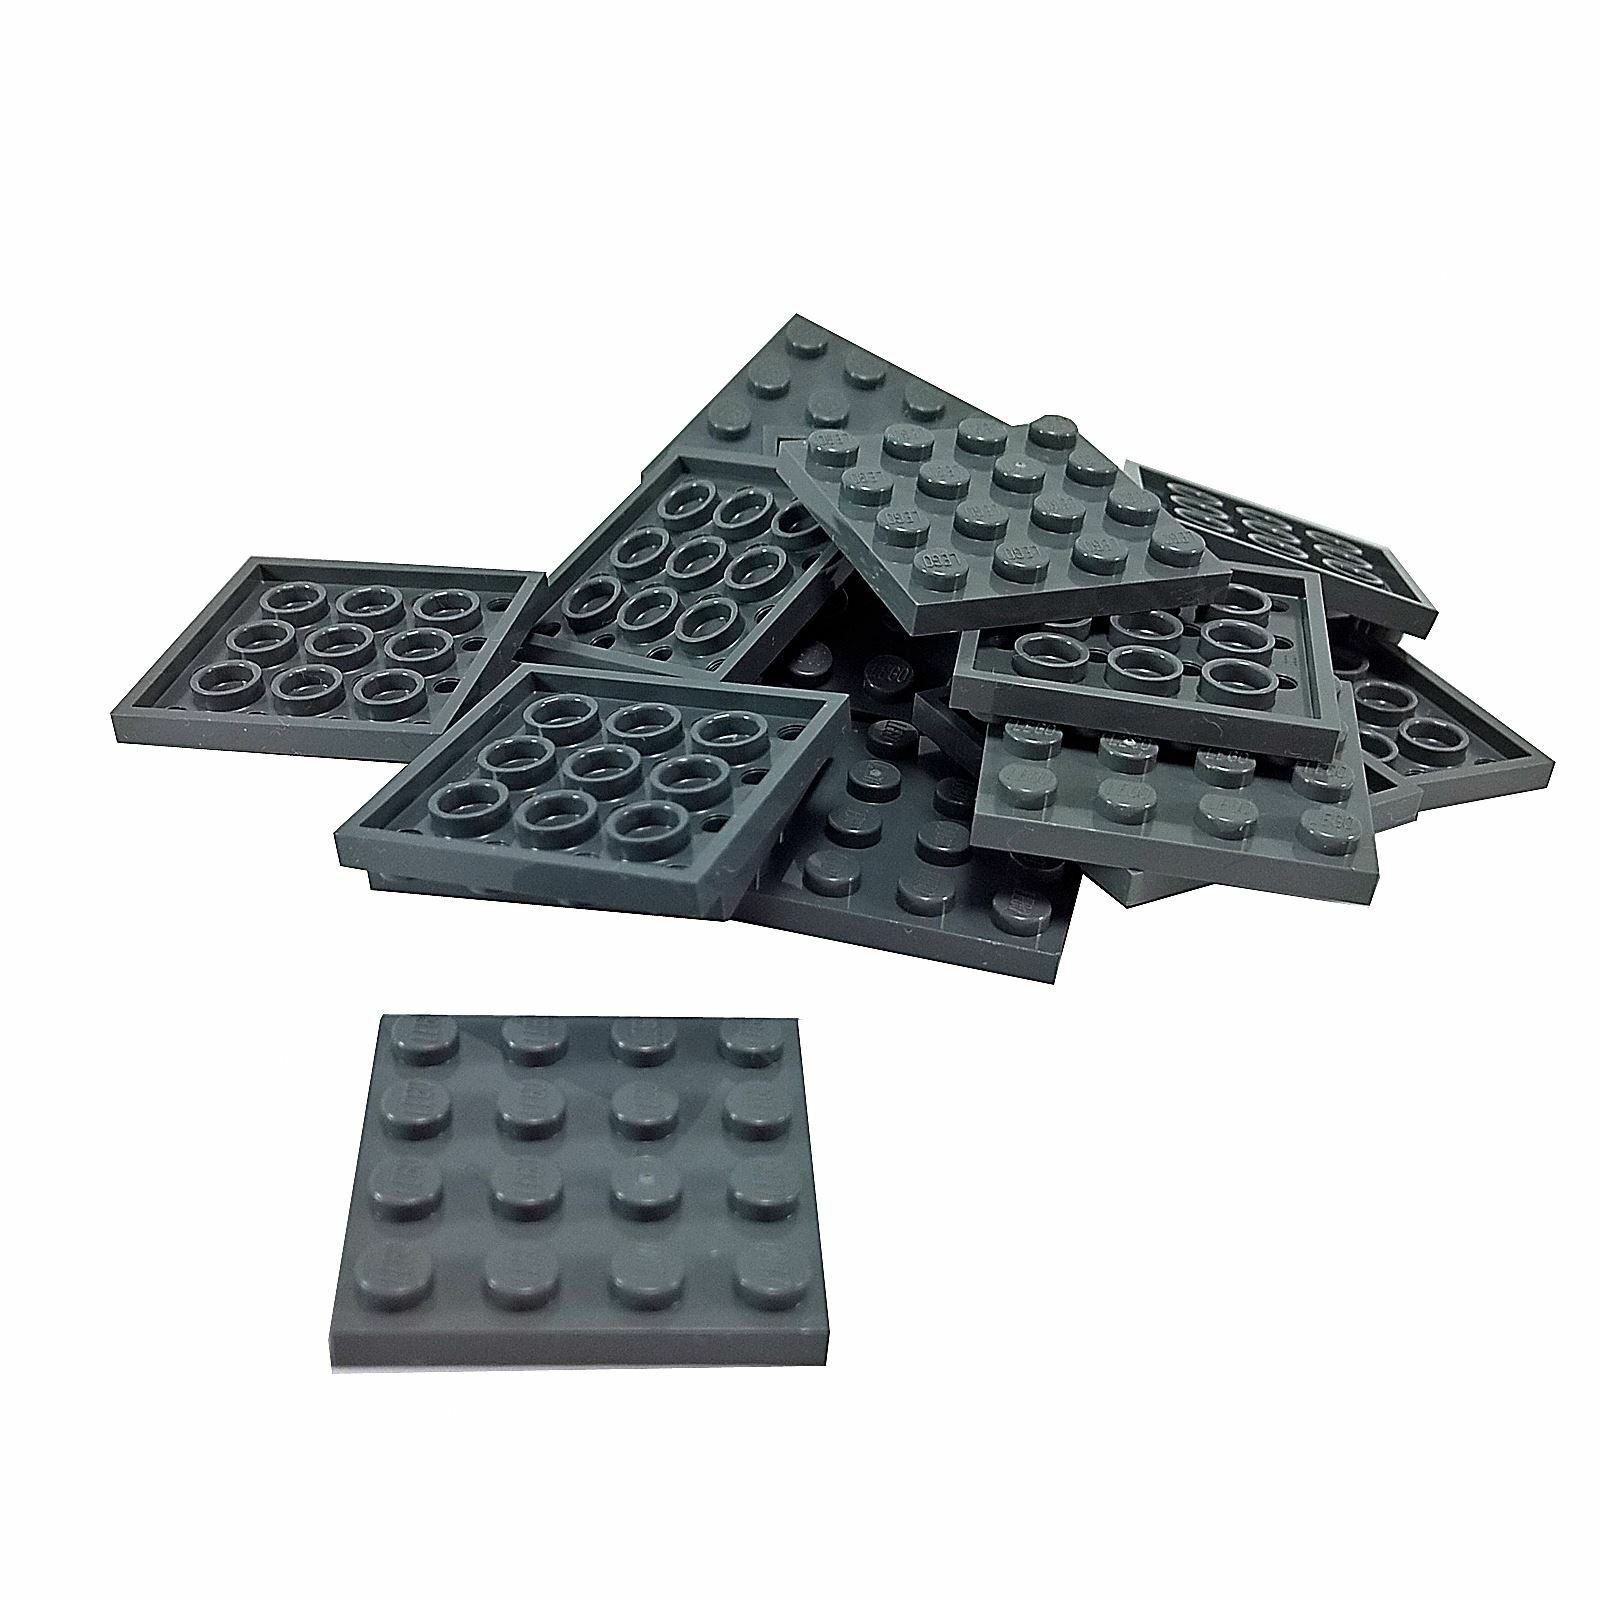 10x Lego ® 3031 Basic Plates Plate Plate 4x4 Red